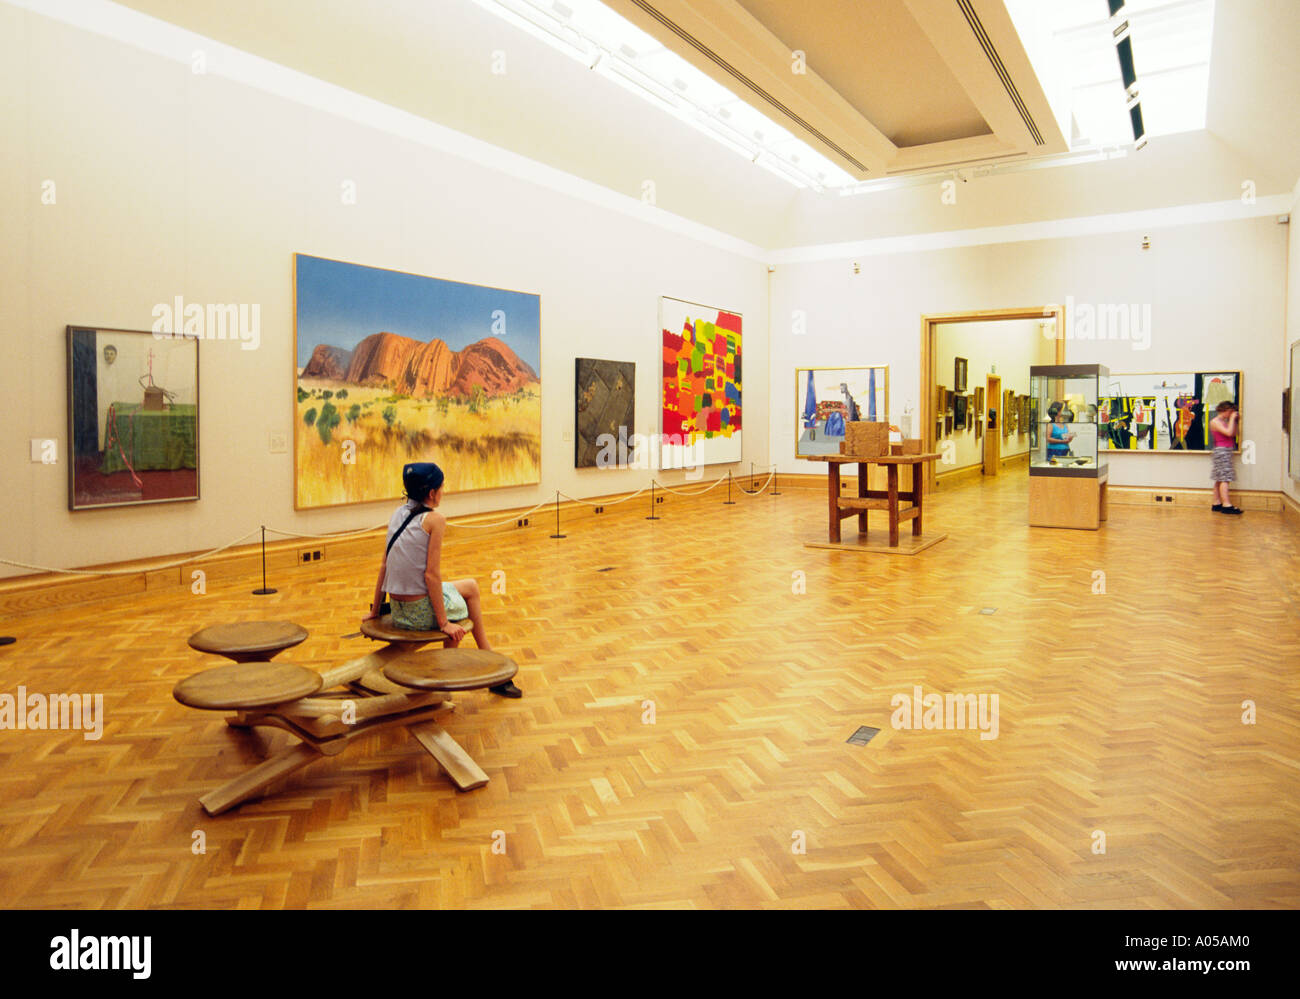 National Museum of Wales in Cardiff, UK. Kunst Galerie Interieur ...